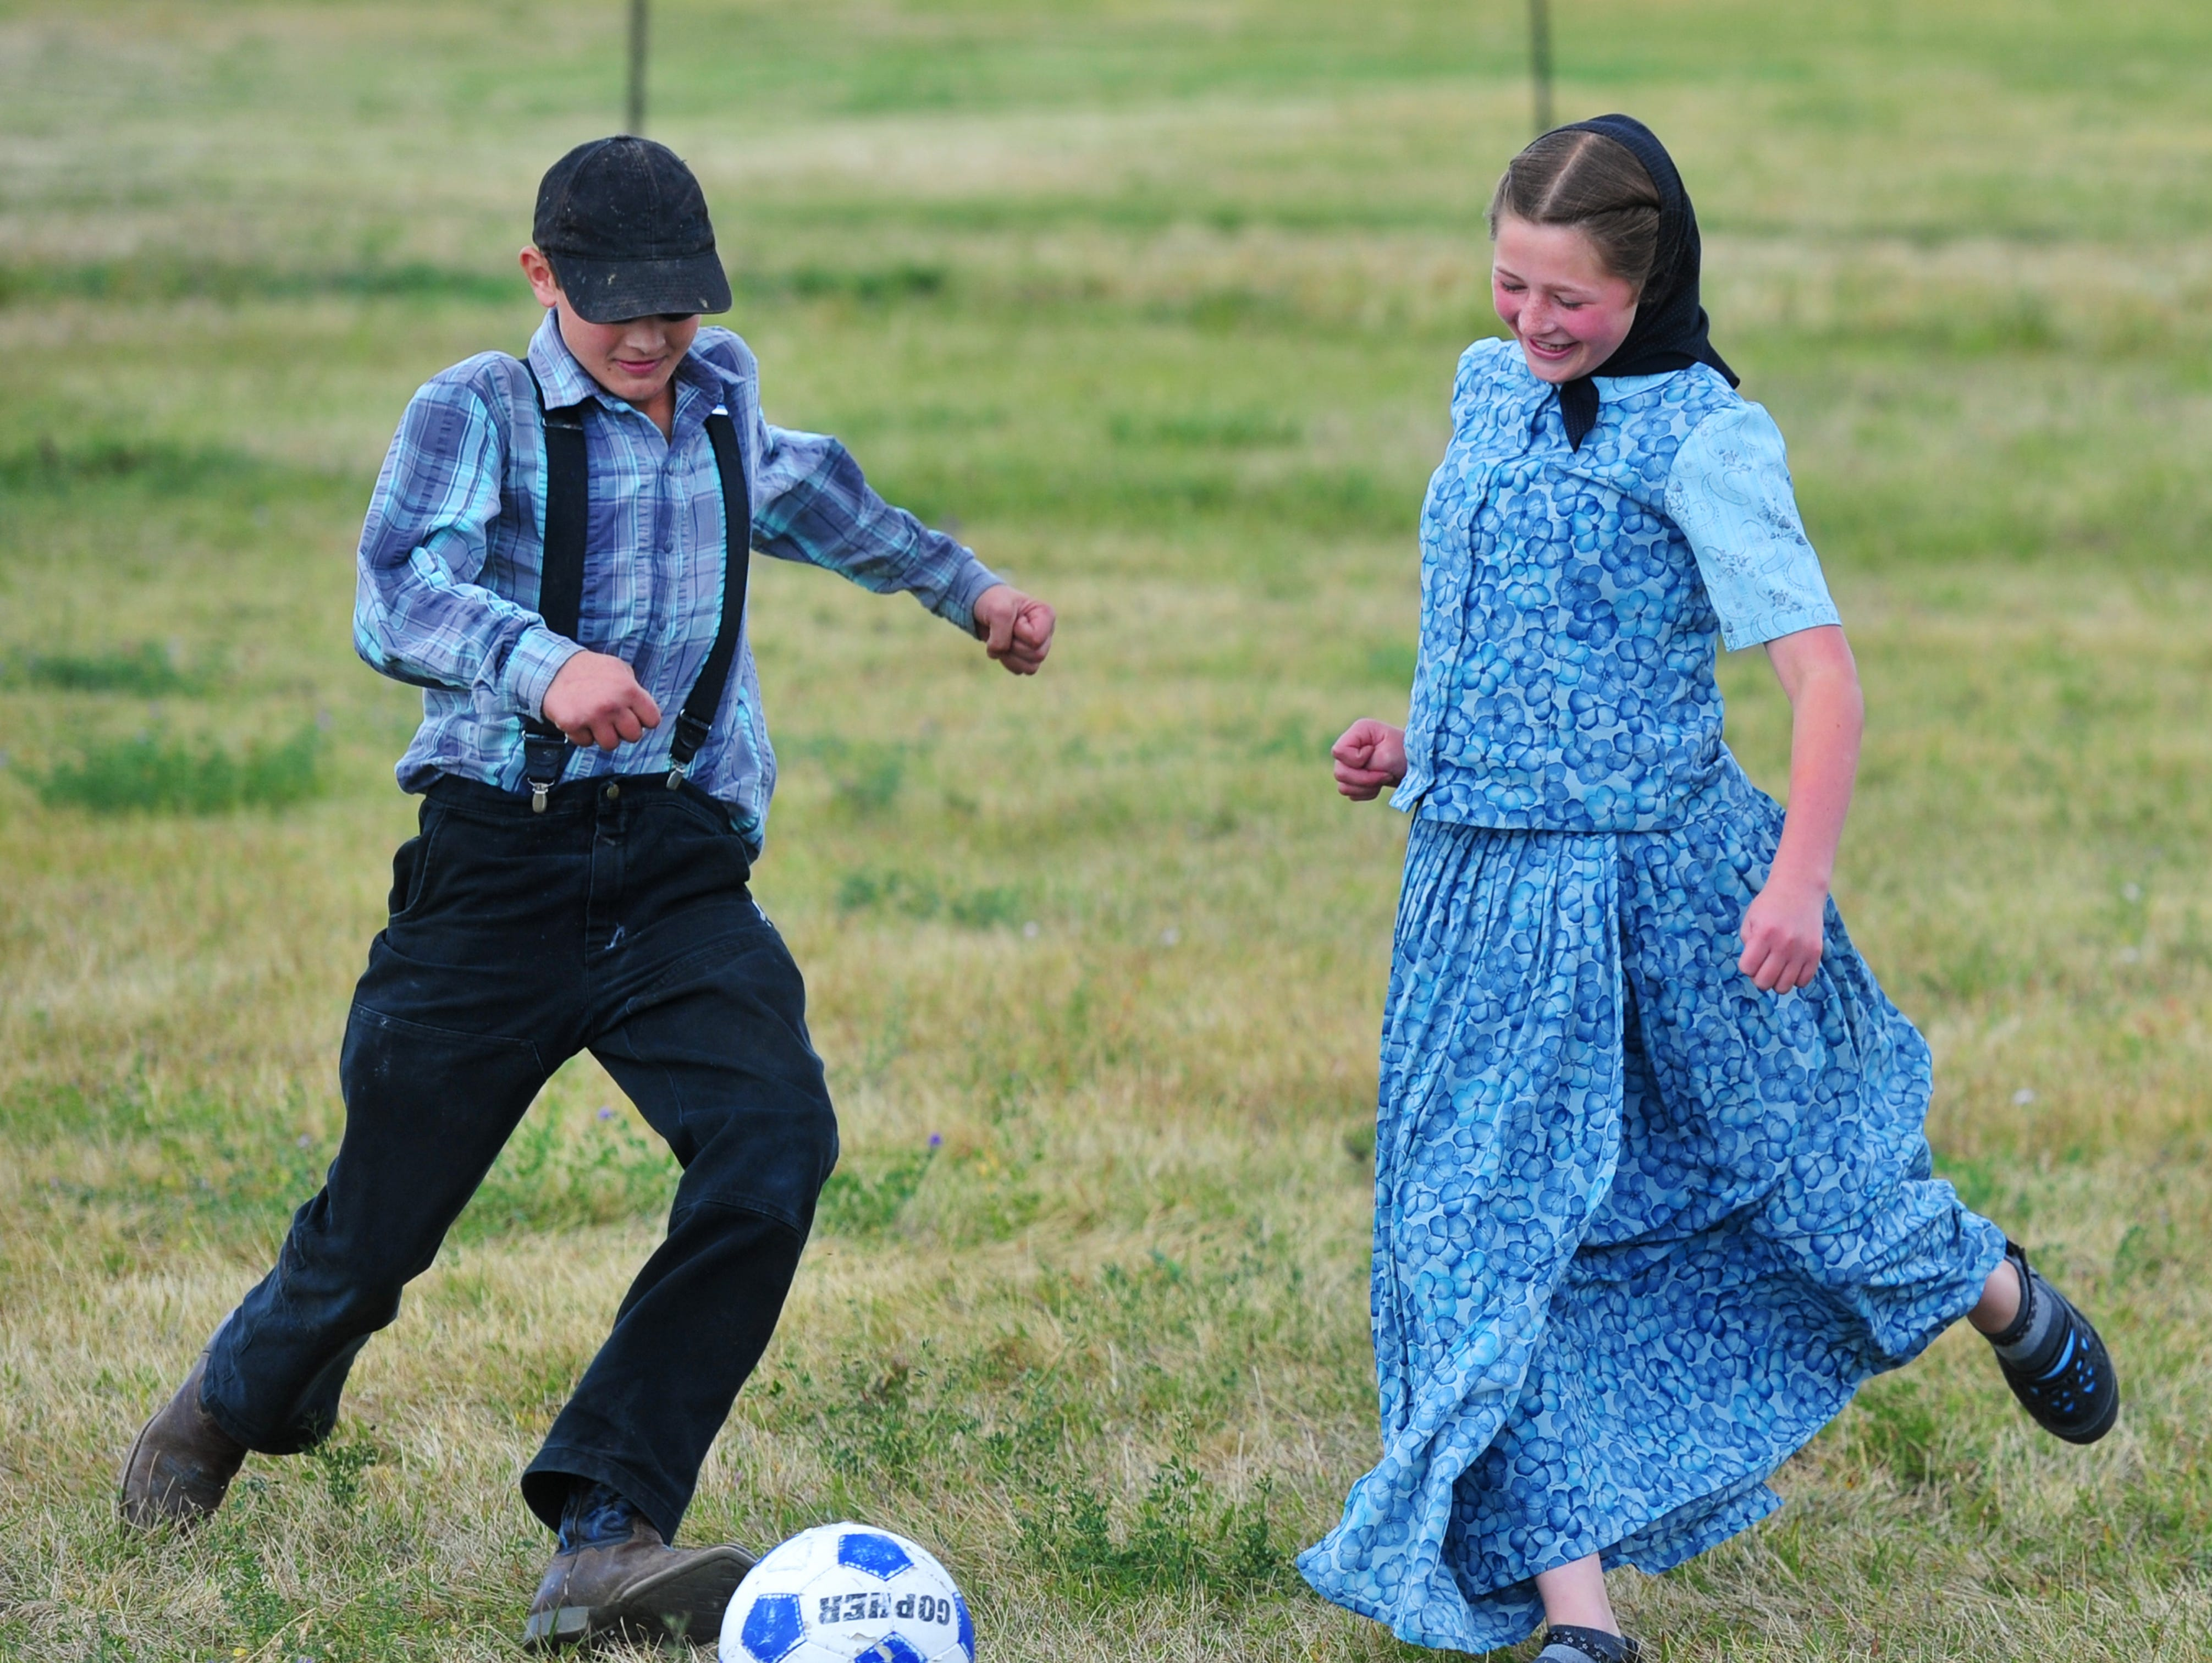 1:22 pm:  Traci Manseau's class plays a boys versus girls soccer match on Monday, Sept. 17, 2018.  Manseau is a teaching veteran of 23 years and she has spent her entire career teaching in one room rural school houses.  She is currently teaching 15 students across seven different grade levels at the Deerfield Hutterite Colony in North Central Montana's Fergus County.